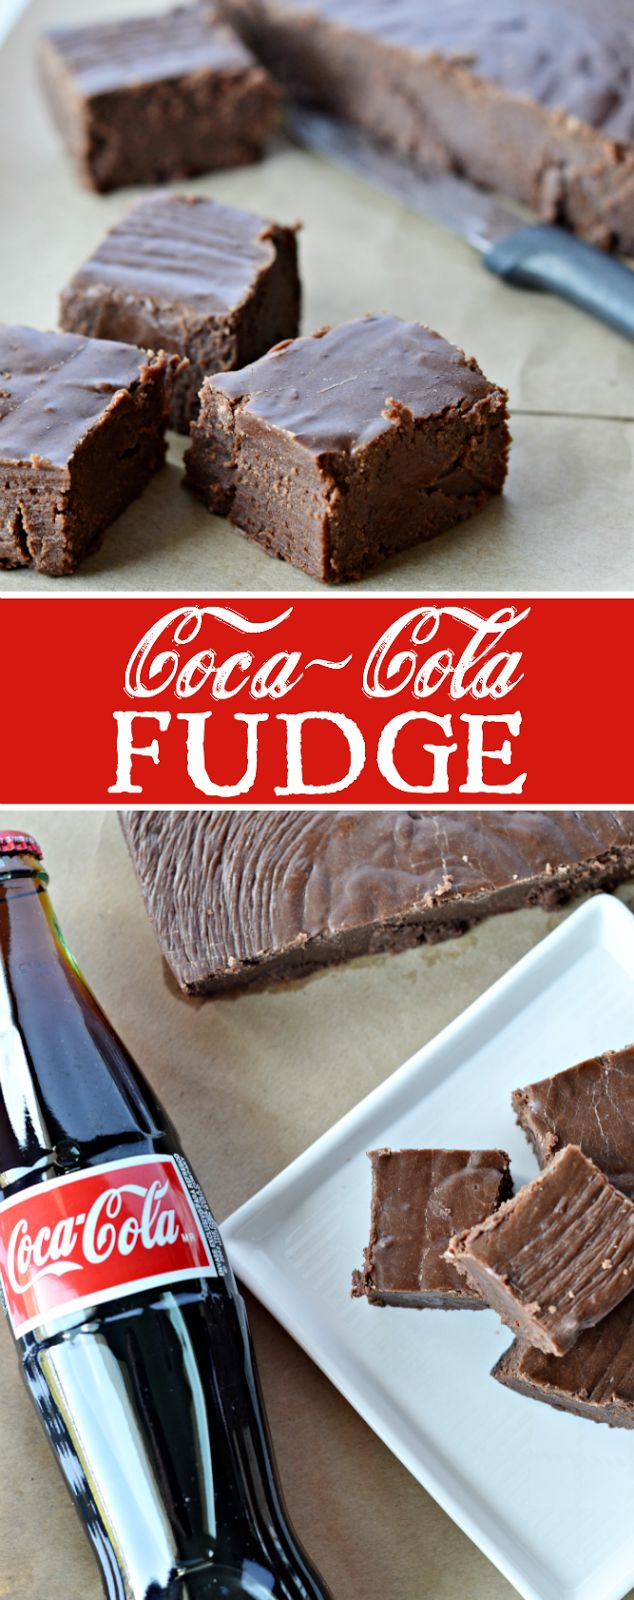 A simple recipe for Coca-Cola Fudge!